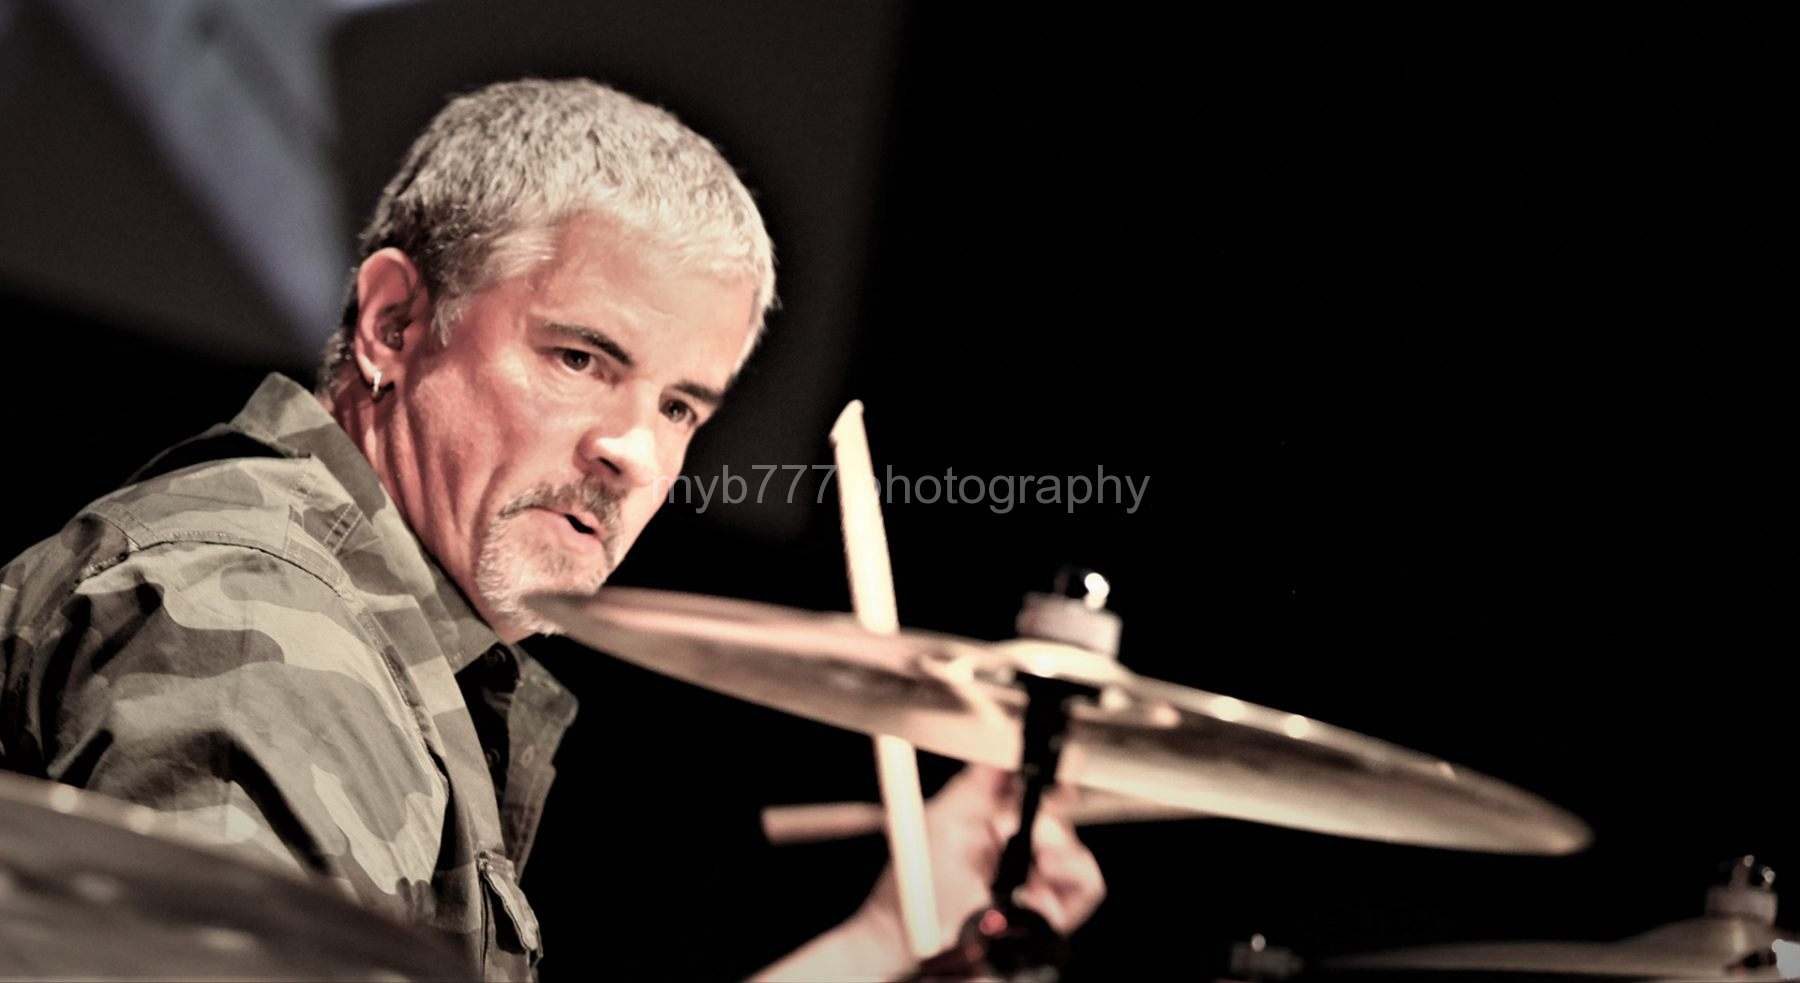 Drummer-Photography-by-myb777-34